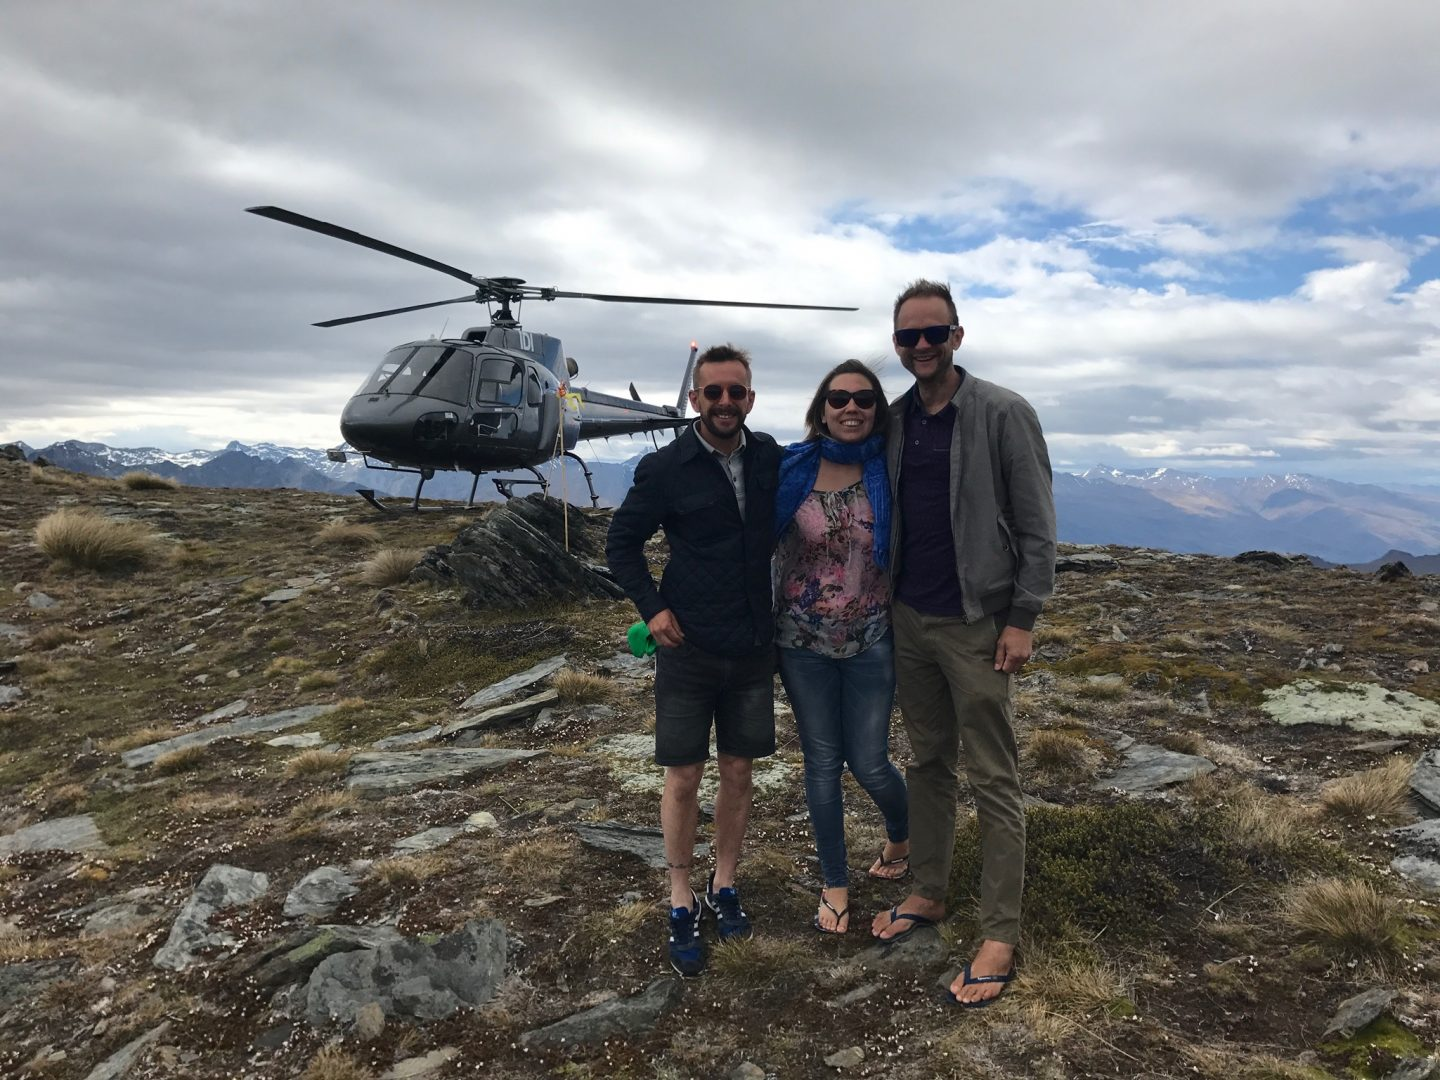 Helicopter ride in Queenstown, New Zealand